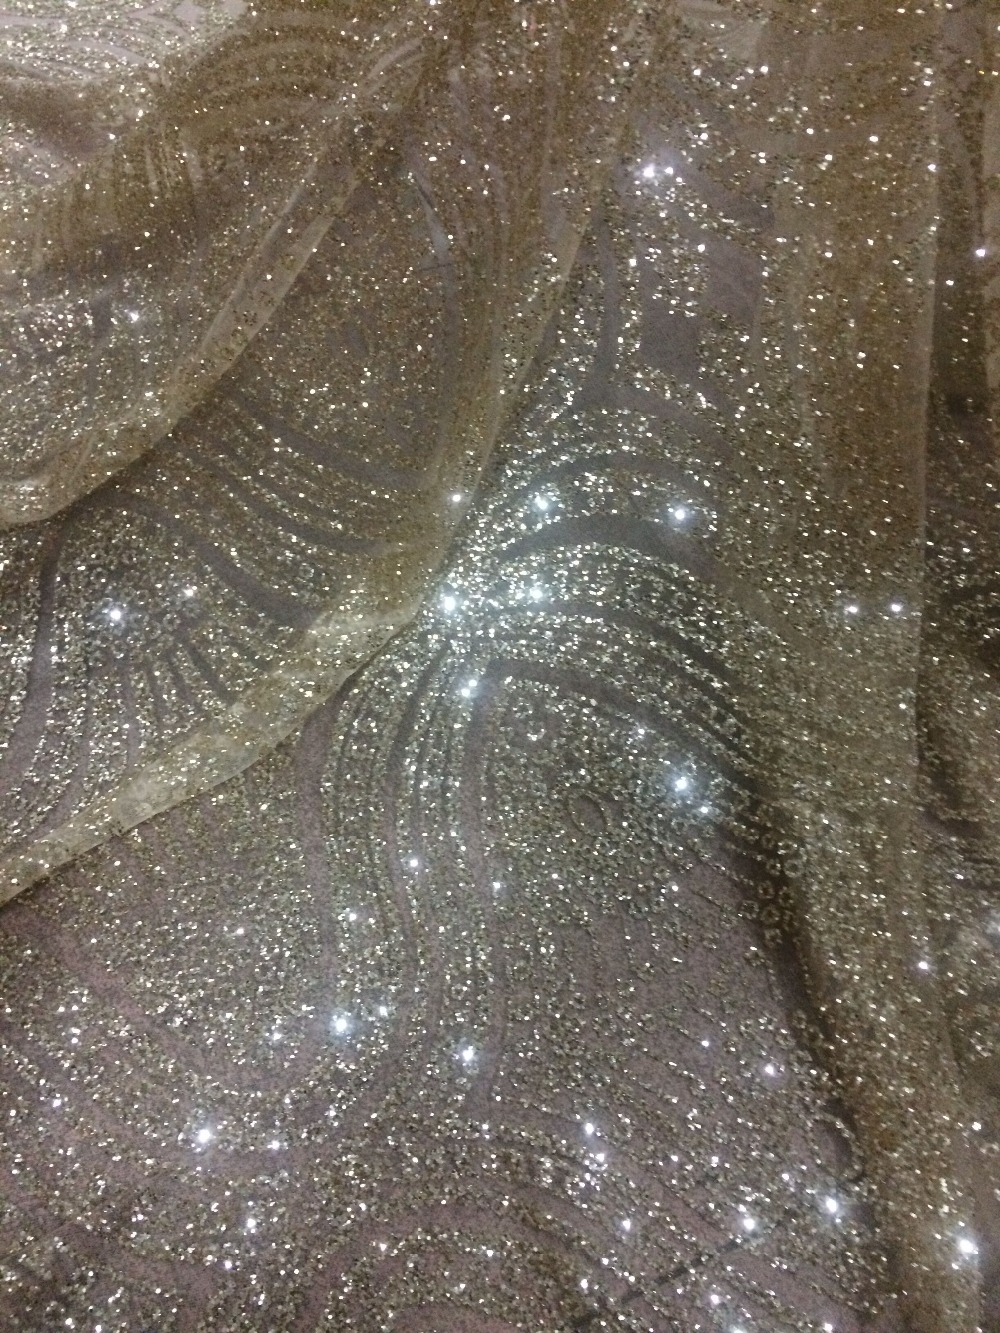 glued glitter African Tulle Lace Fabric LJY 42932 hot sale African French Lace Fabric with gold